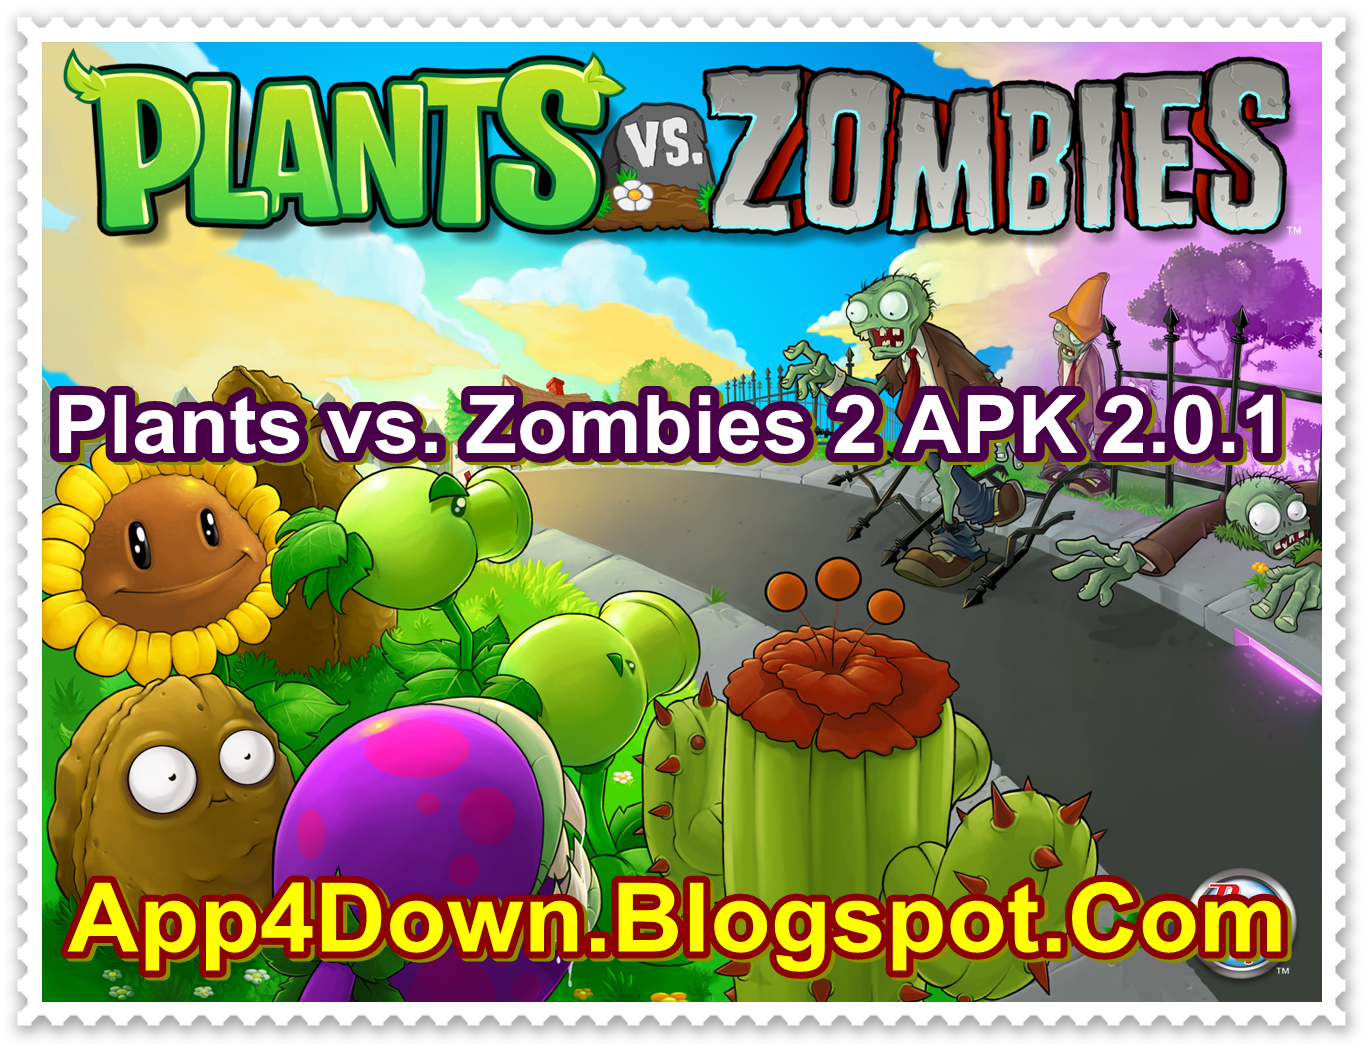 Plants+vs.+Zombies+2+APK+2.0.1+For+Android.png